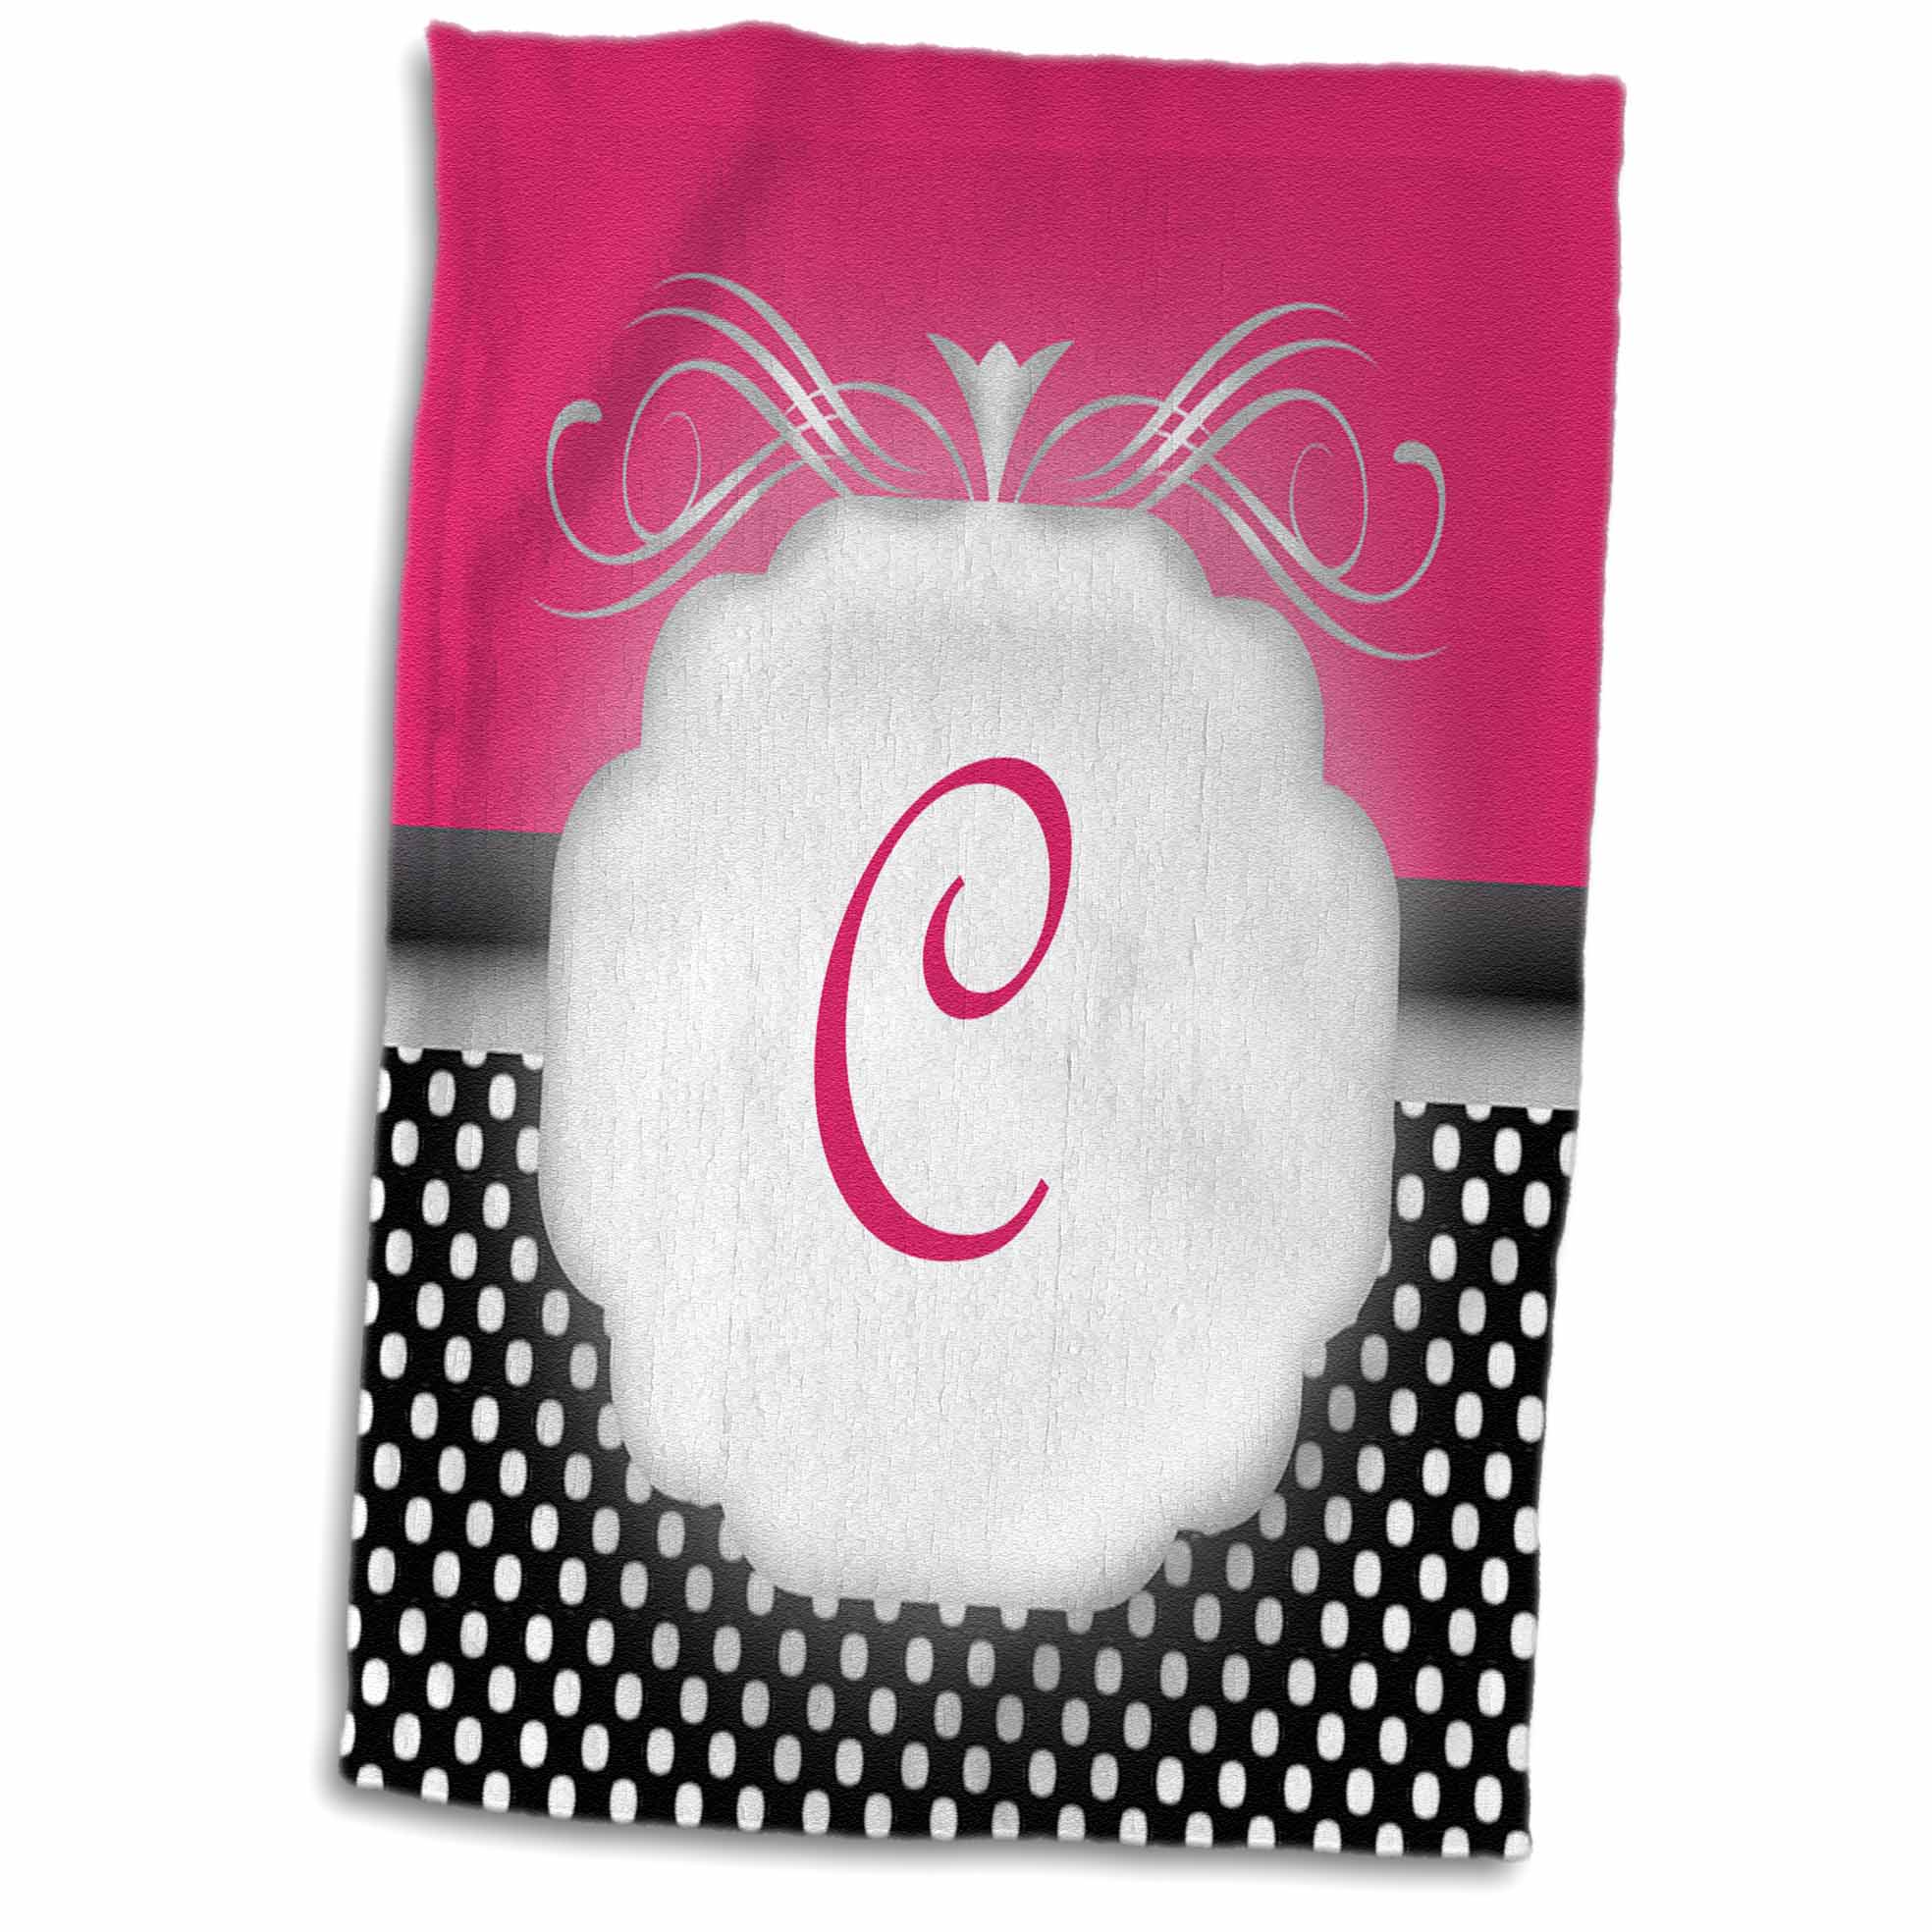 3dRose Elegant Pink with Black and White Polka Dot Monogram Letter C - Towel, 15 by 22-inch